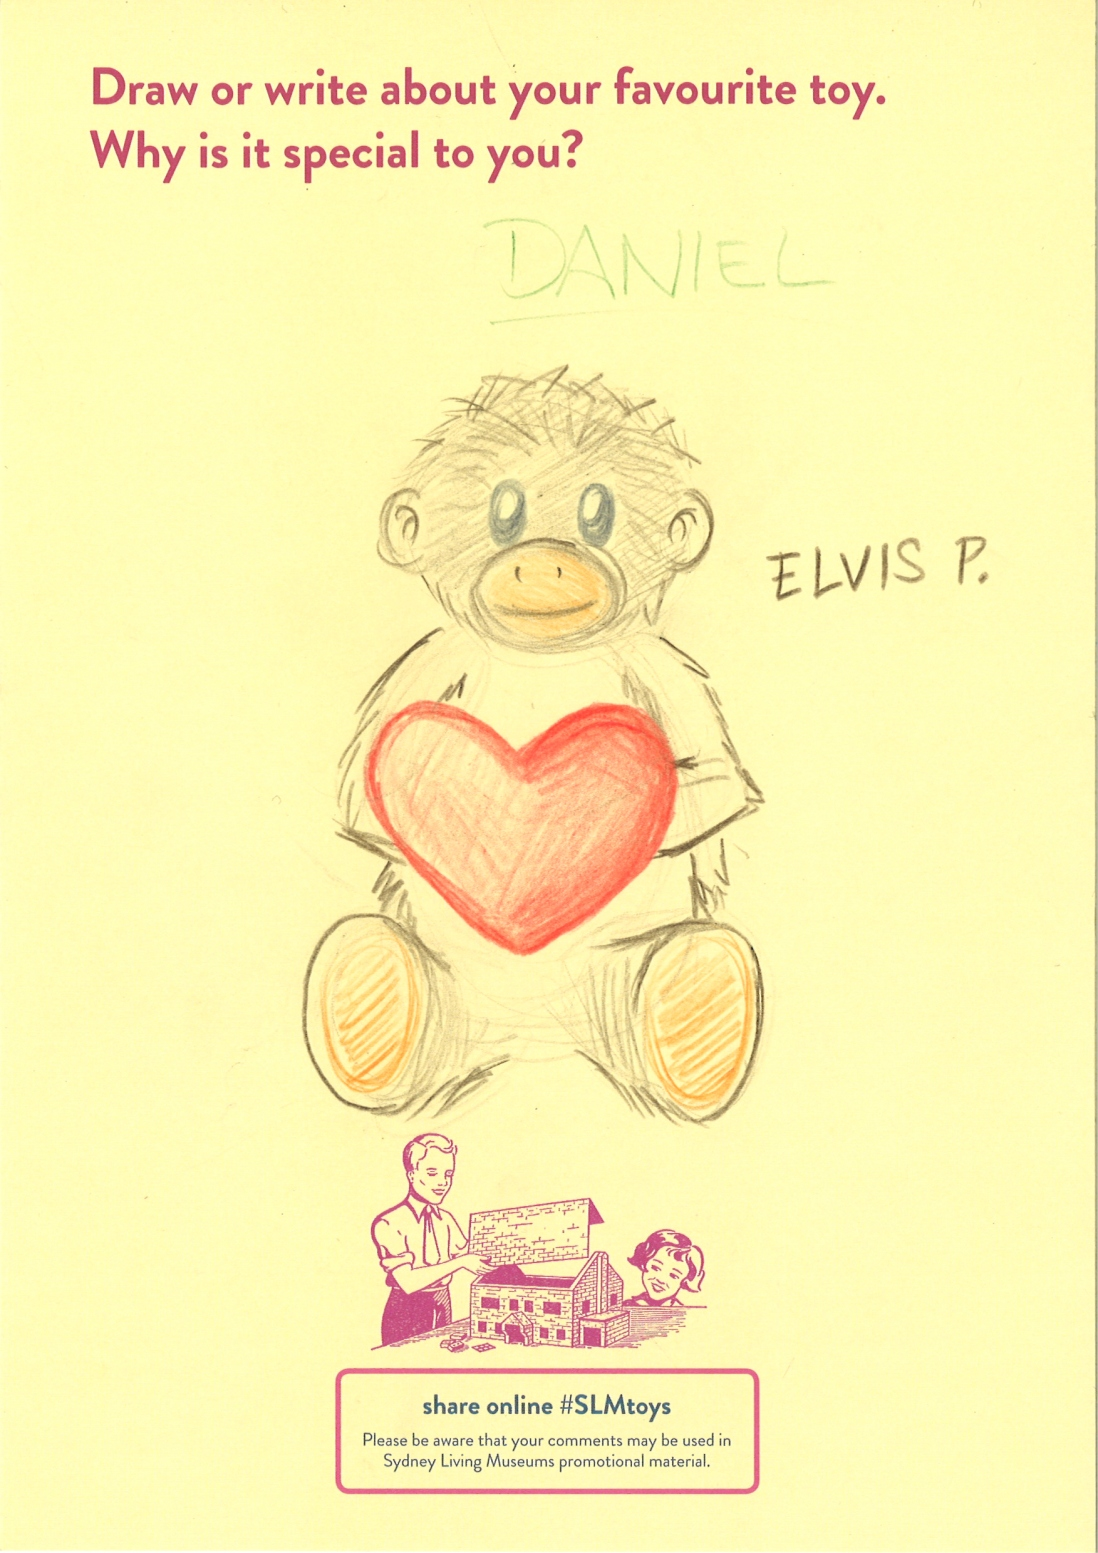 A drawing of a plush monkey holding a love heart